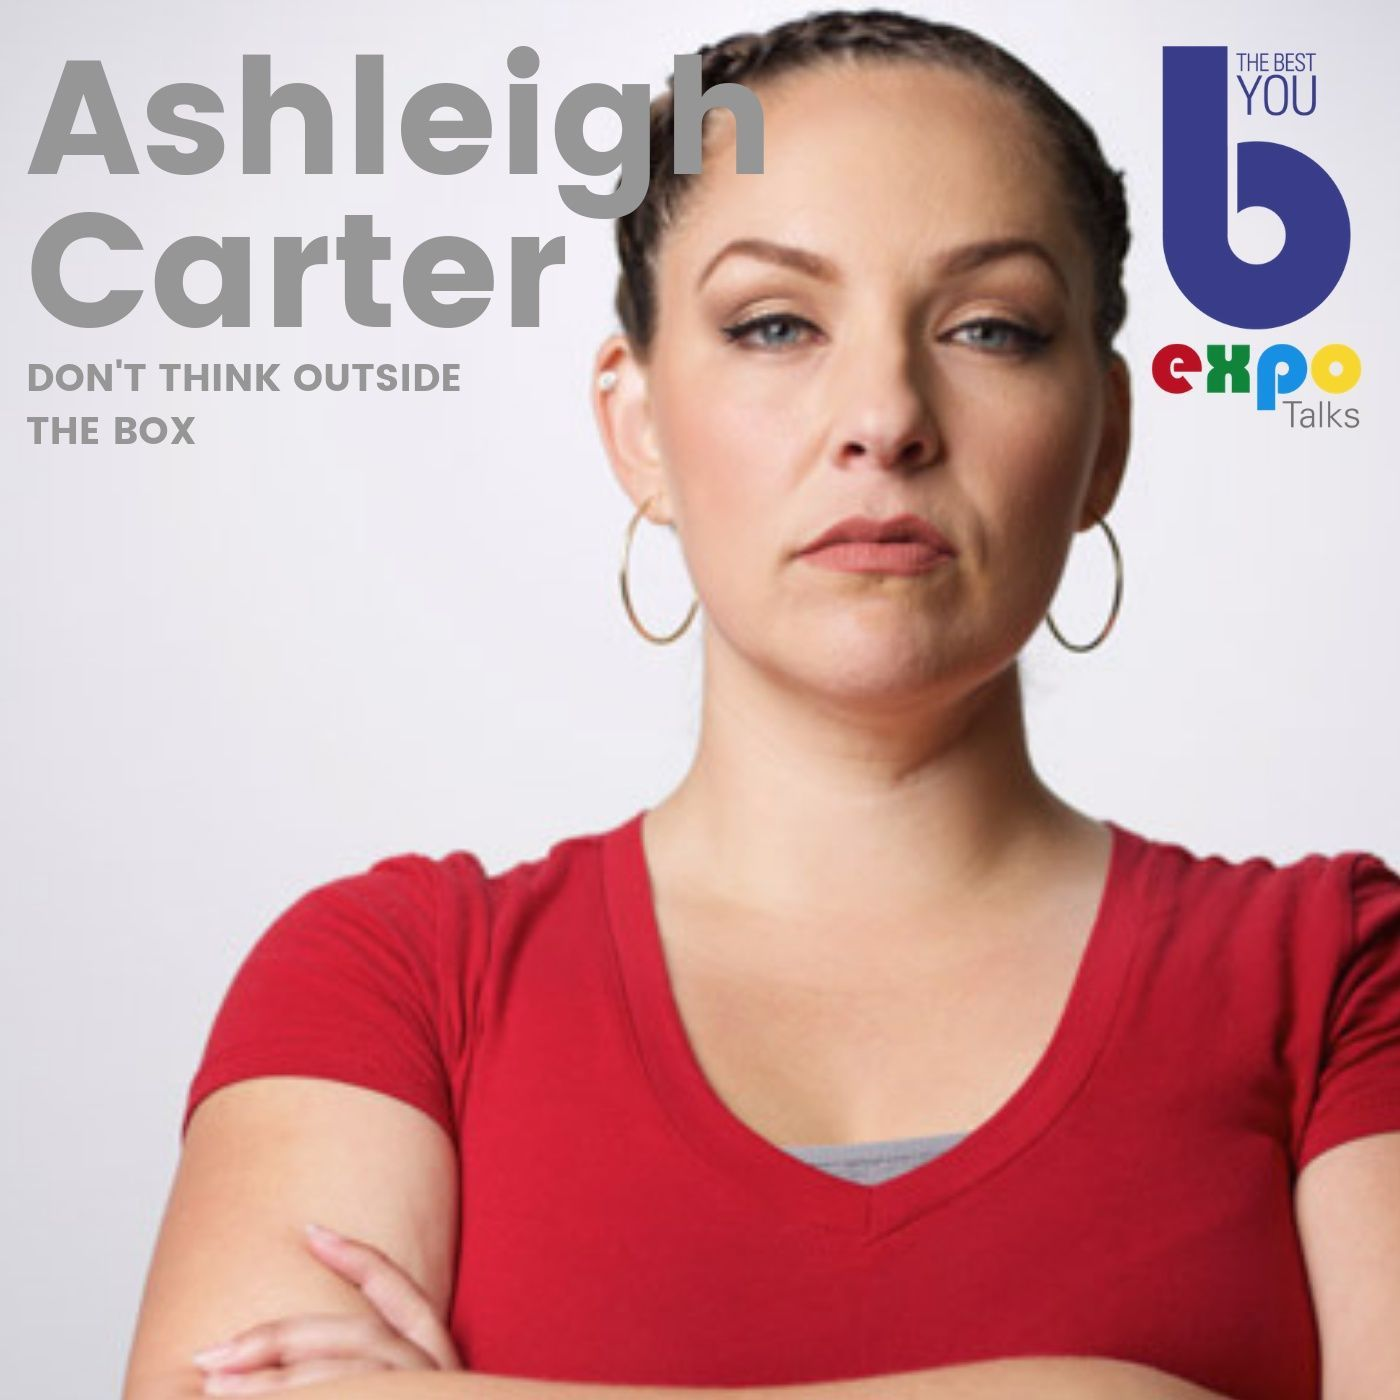 Listen to Ashleigh Carter at The Best You EXPO